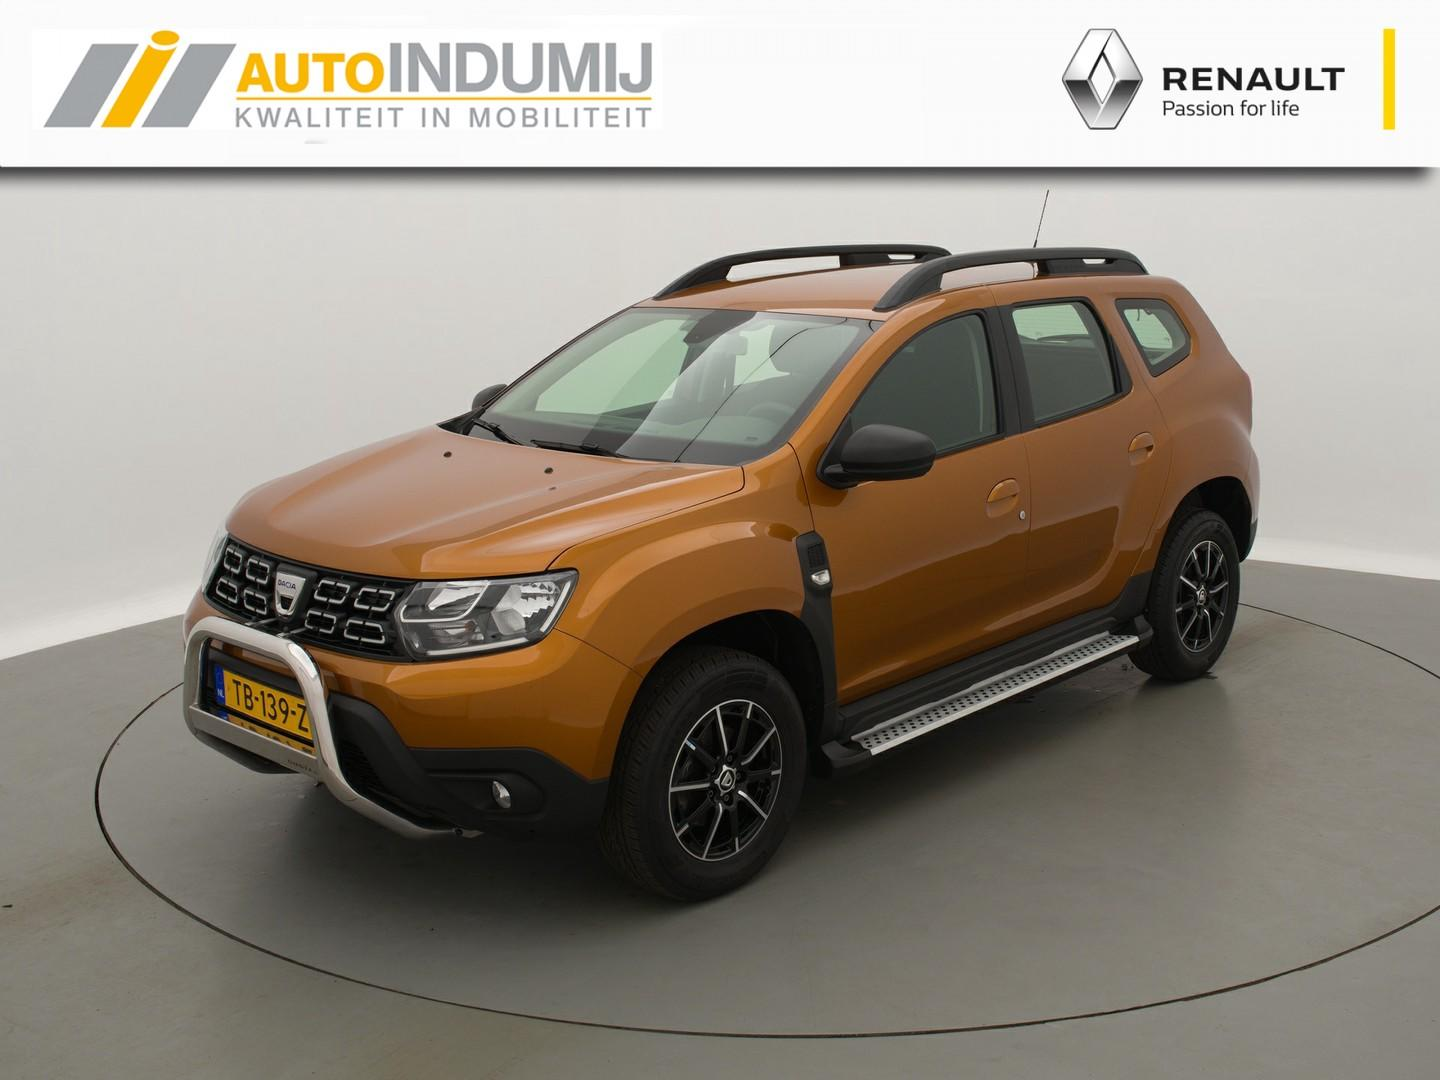 Dacia Duster Tce 125 comfort // airco / cruise control / parkeersensoren